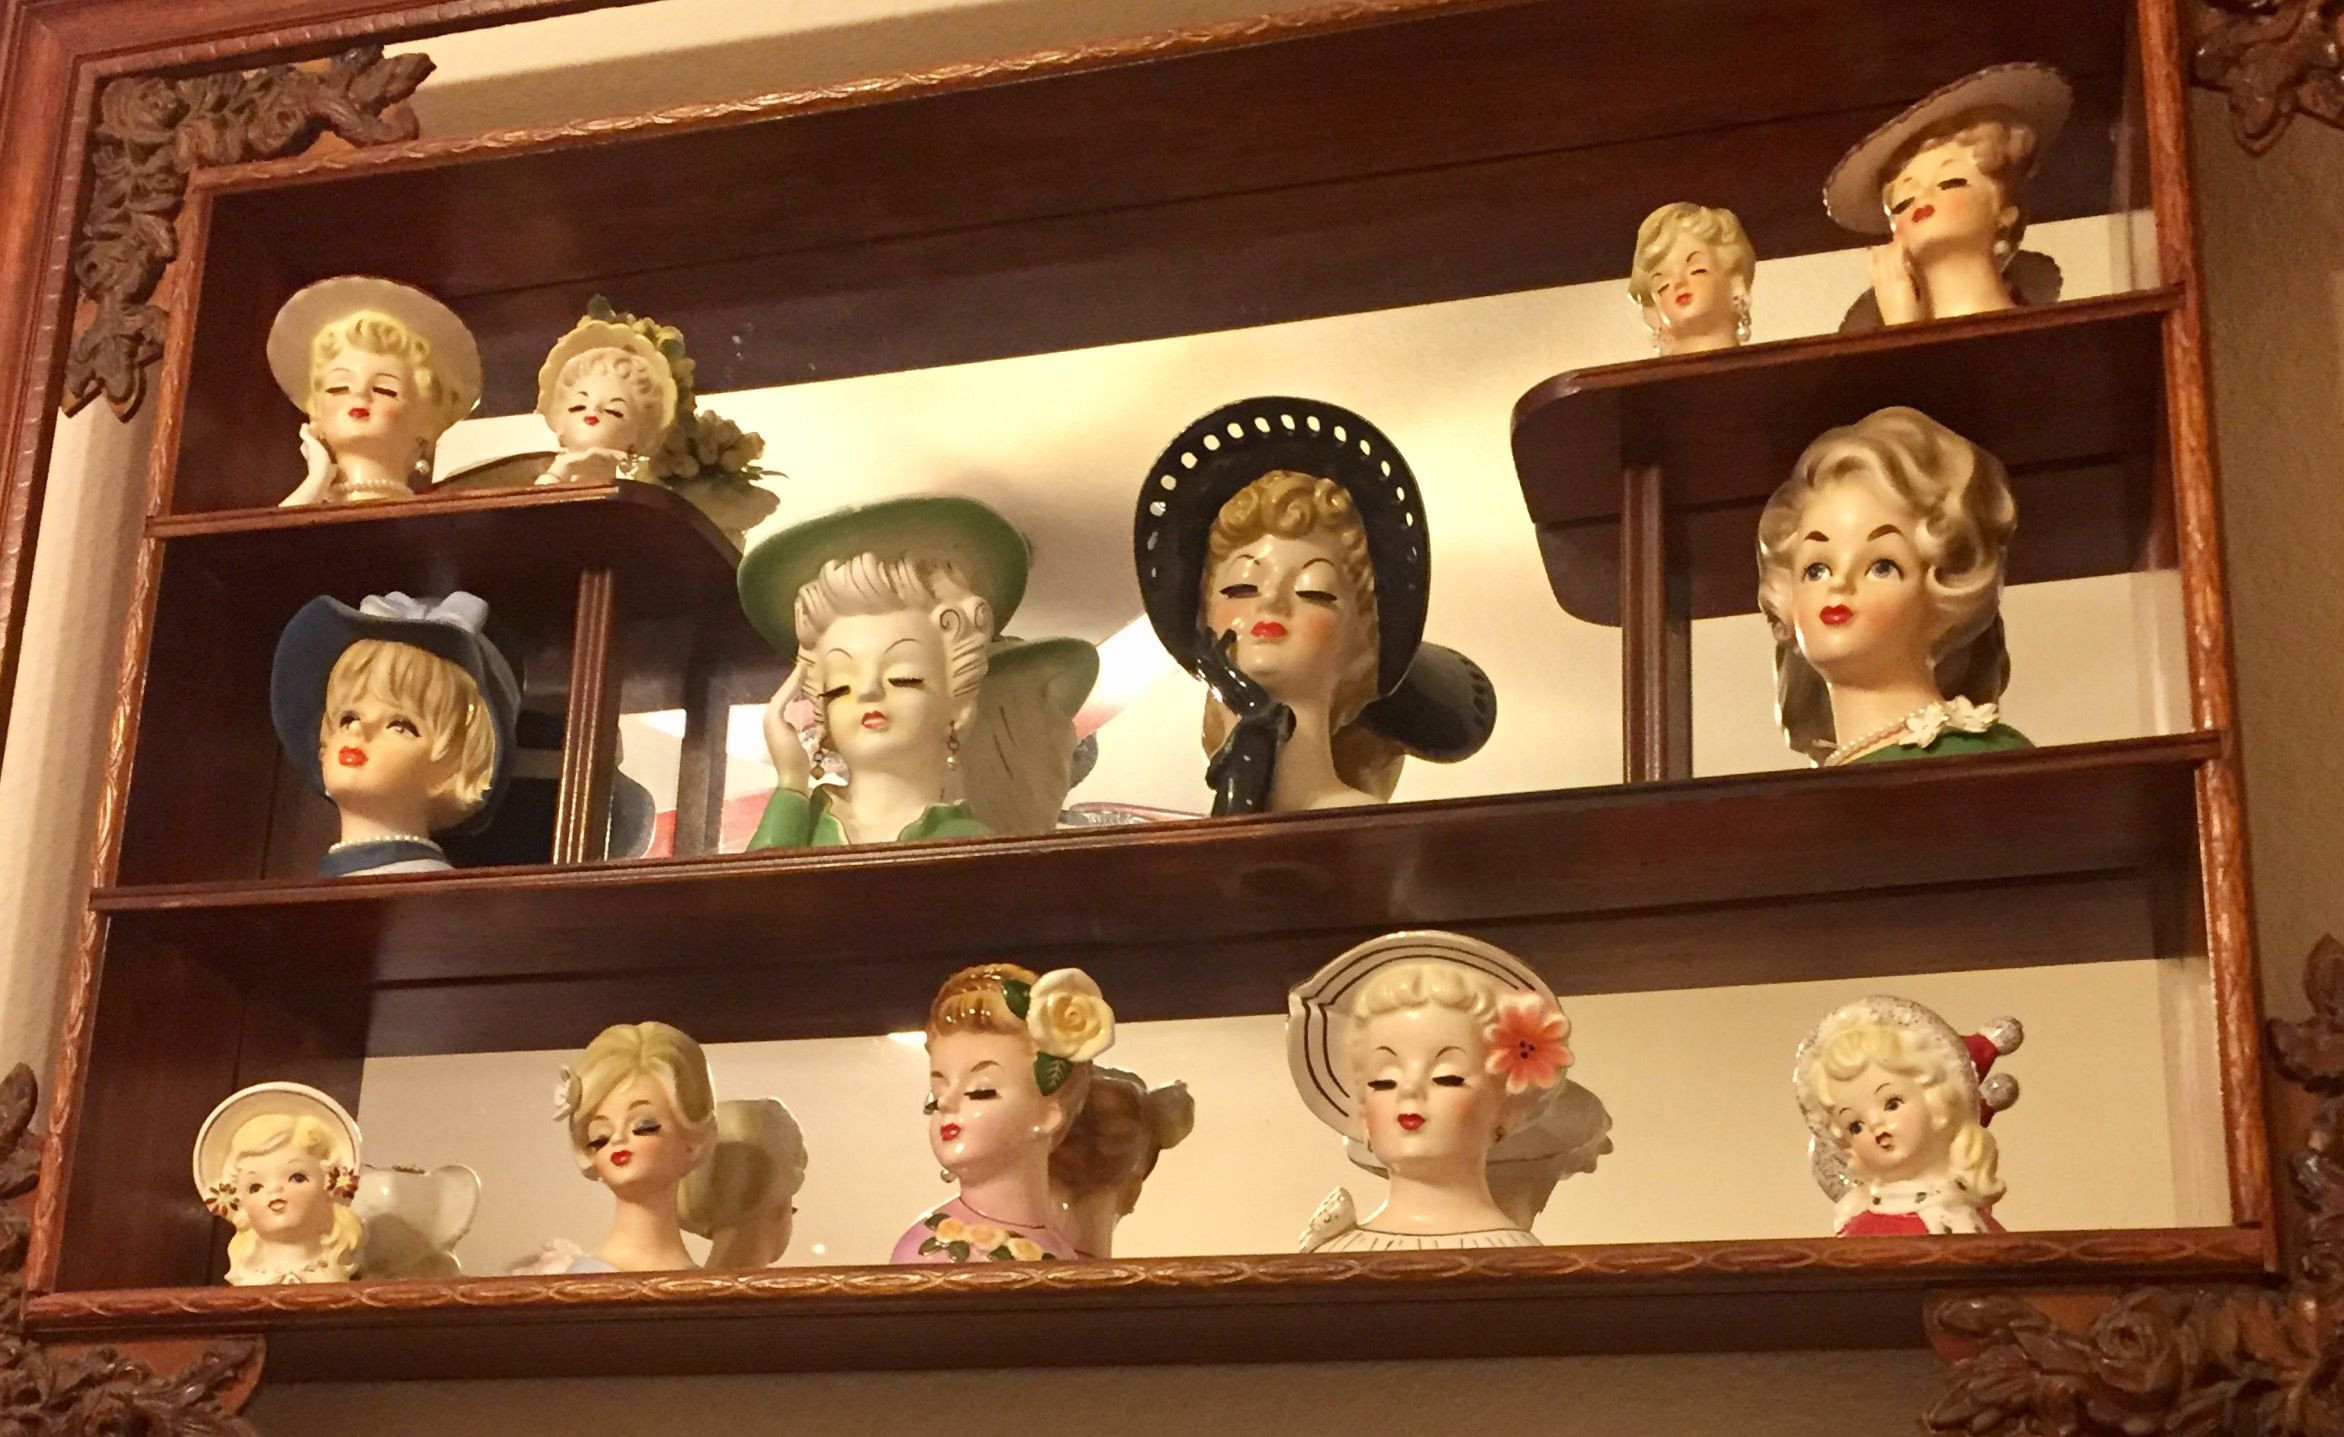 antique lady head vases of collecting vintage lady head vases for headvasesdisplay 58c326ef3df78c353c6d70c2